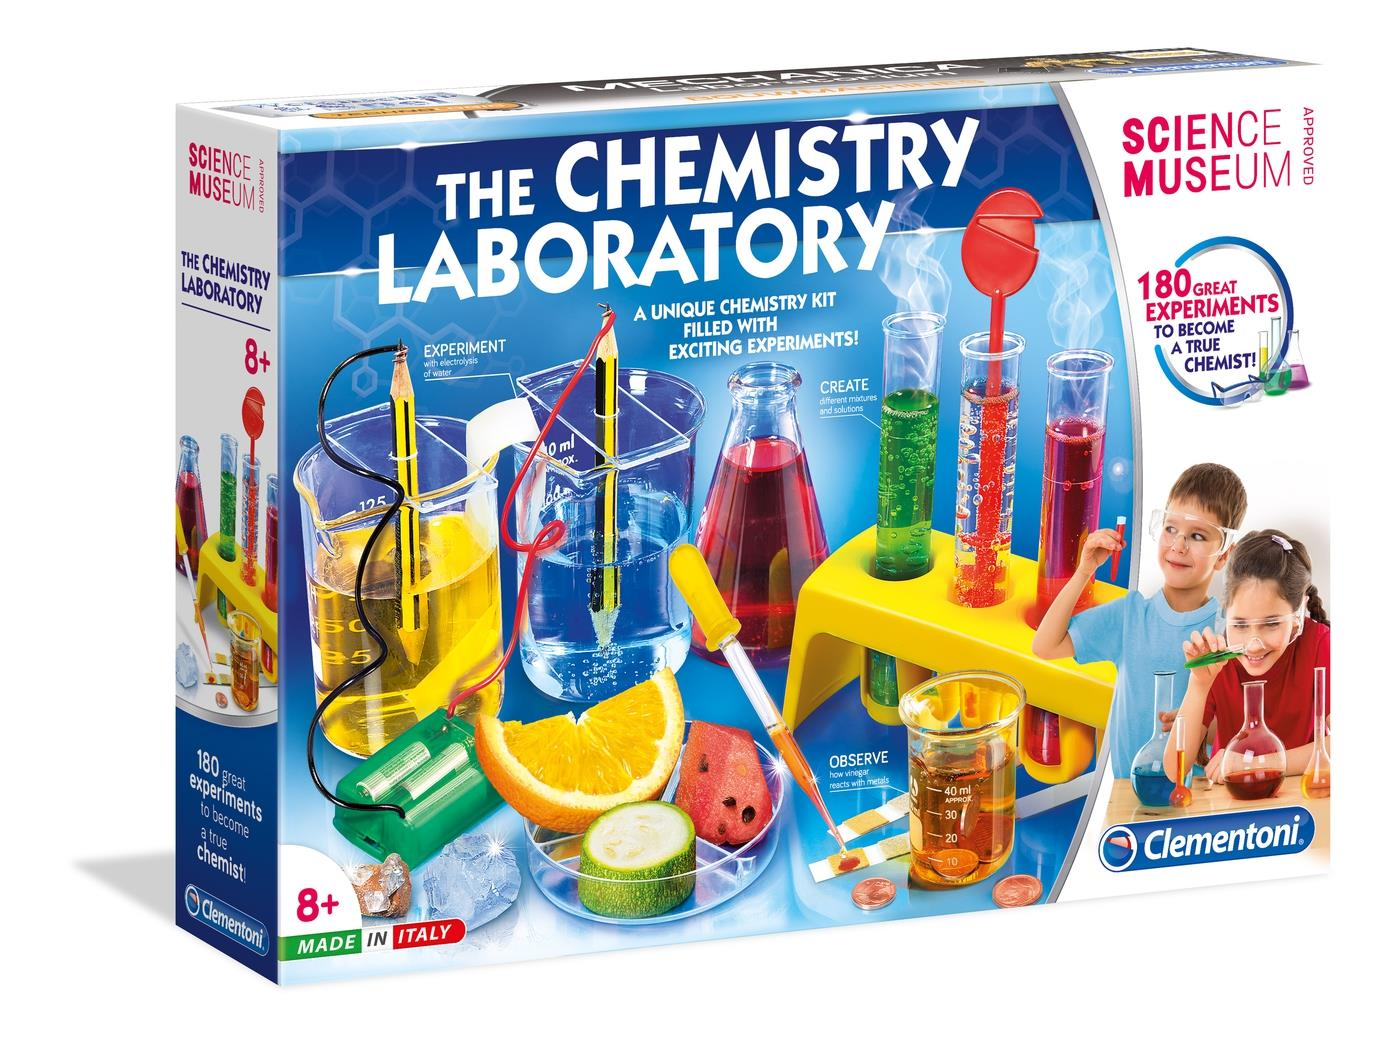 SCIENCE MUSEUM Clementoni My First Chemistry Set